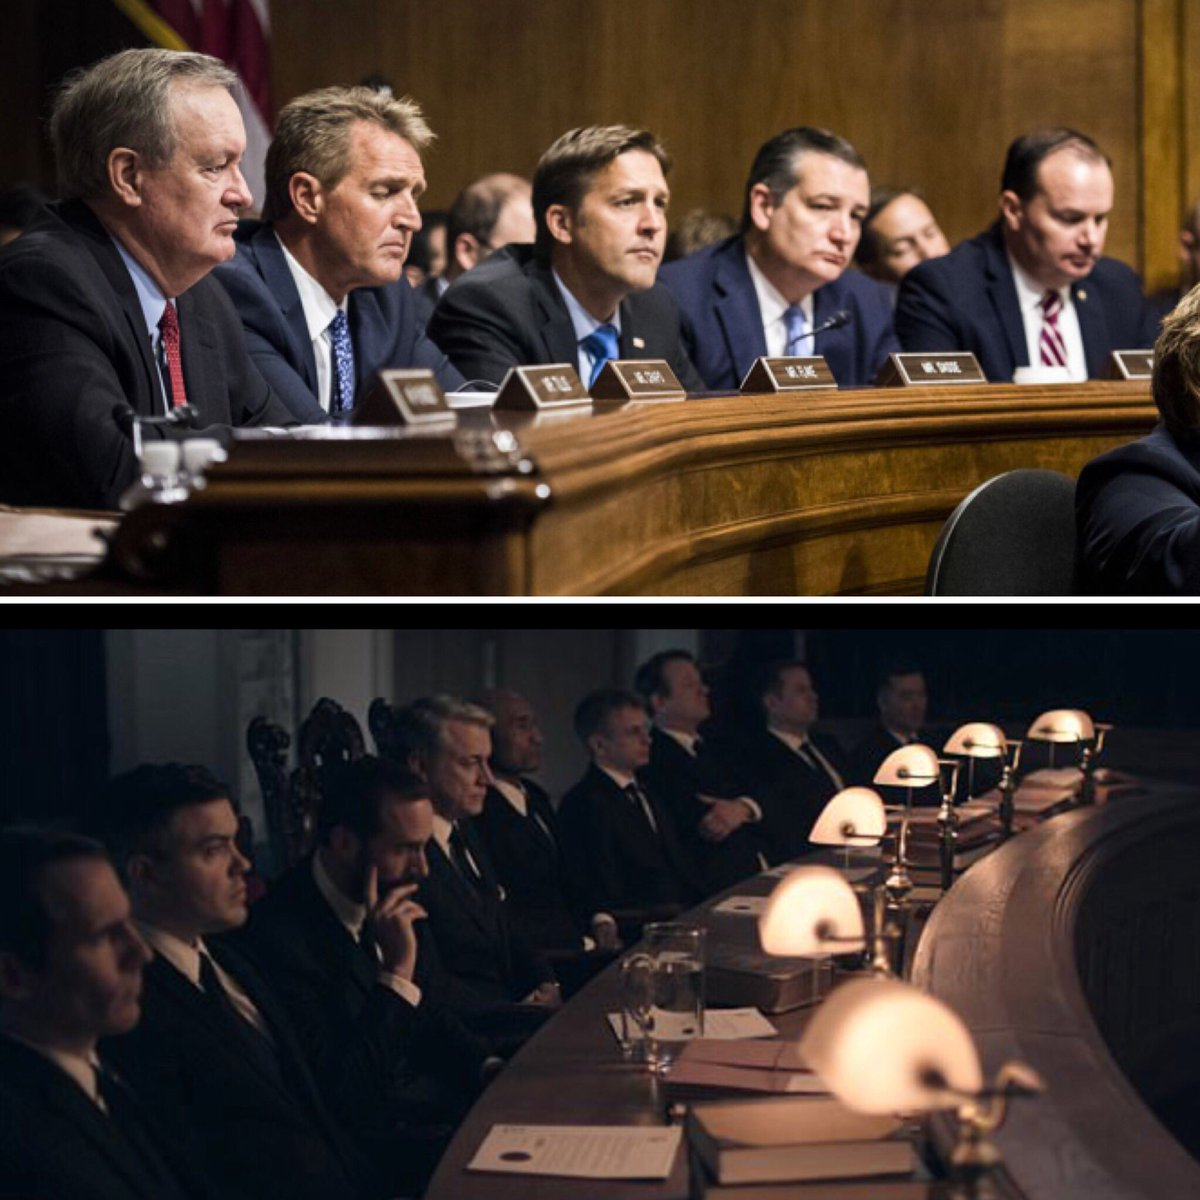 One of these is from today's hearing. The other is a still from The Handmaid's Tale.